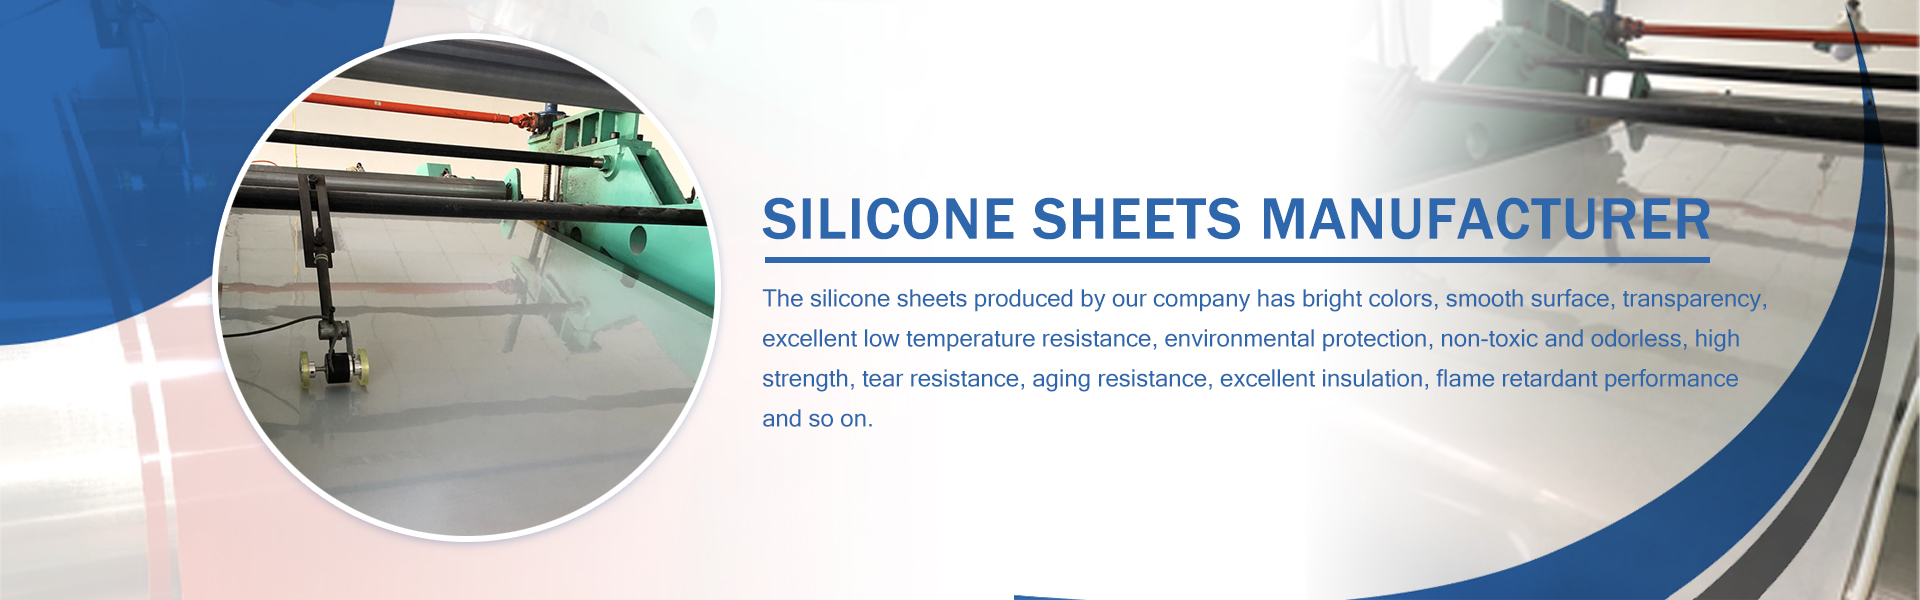 SILICONE SHEETS MANUFACTURER BANNER 03